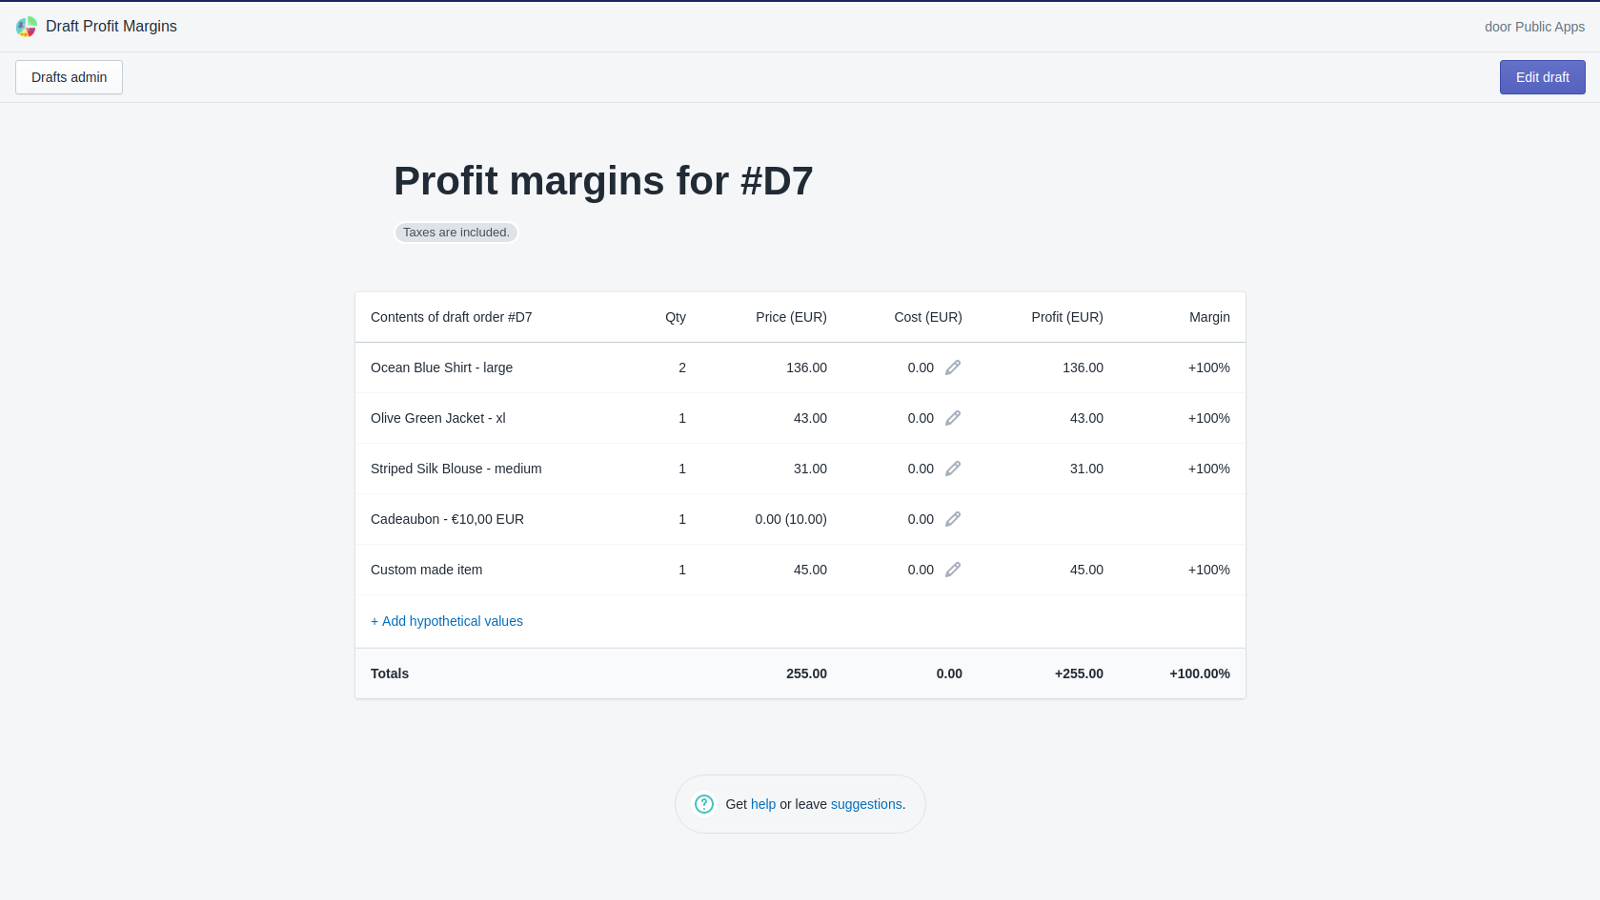 Main screen showing the profit margins table